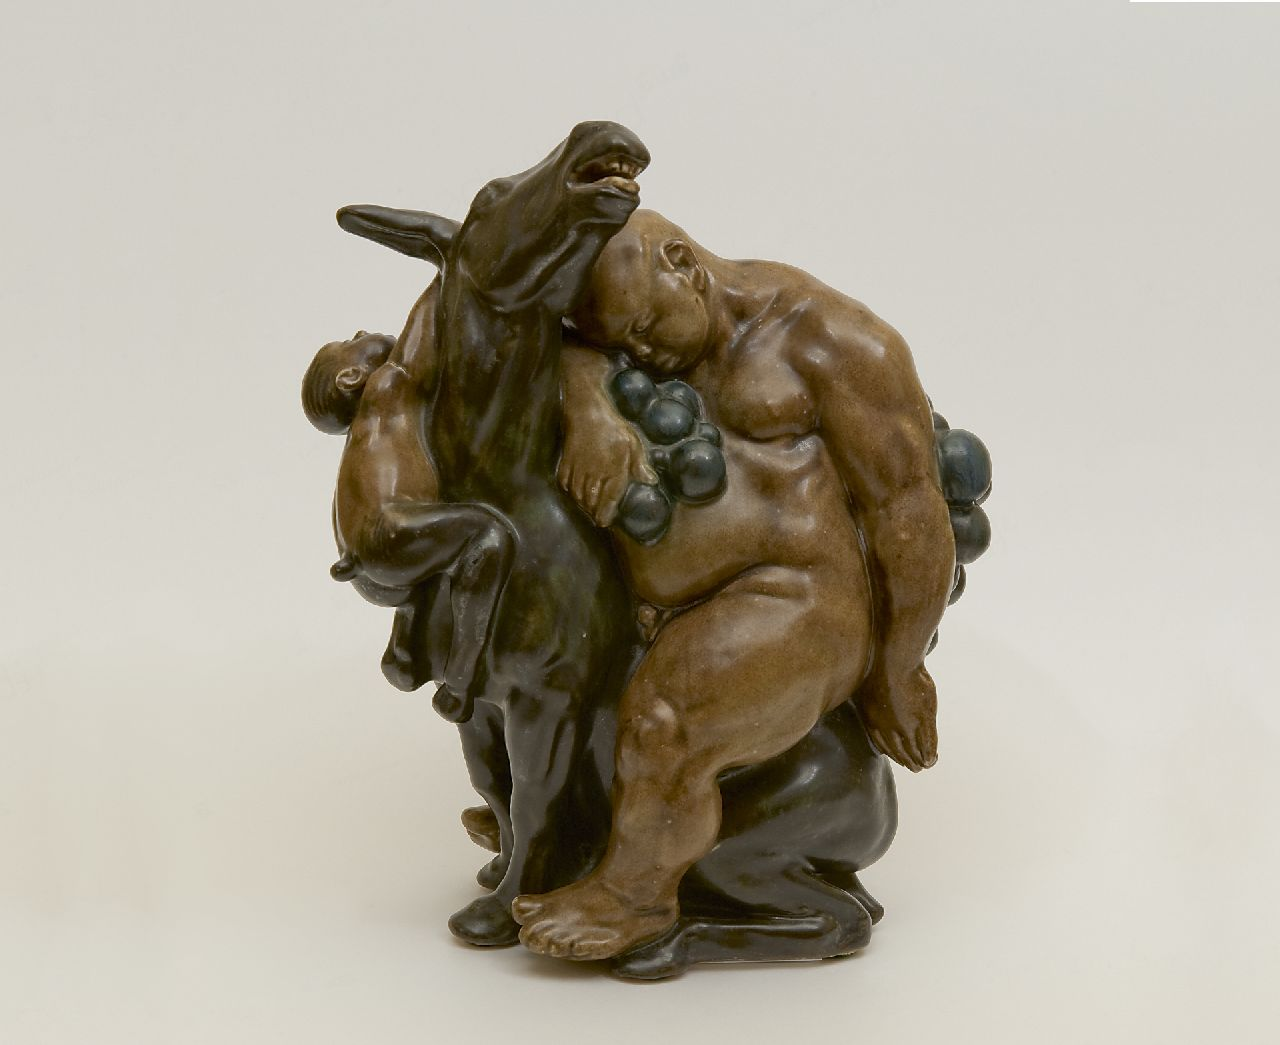 Nielsen K.  | Kai Nielsen | Sculptures and objects offered for sale | Bacchus and Faun - two sculptures, polychrome painted, glazed pottery 23.6 x 19.0 cm, signed under the base (both) and dated 1912 (both)